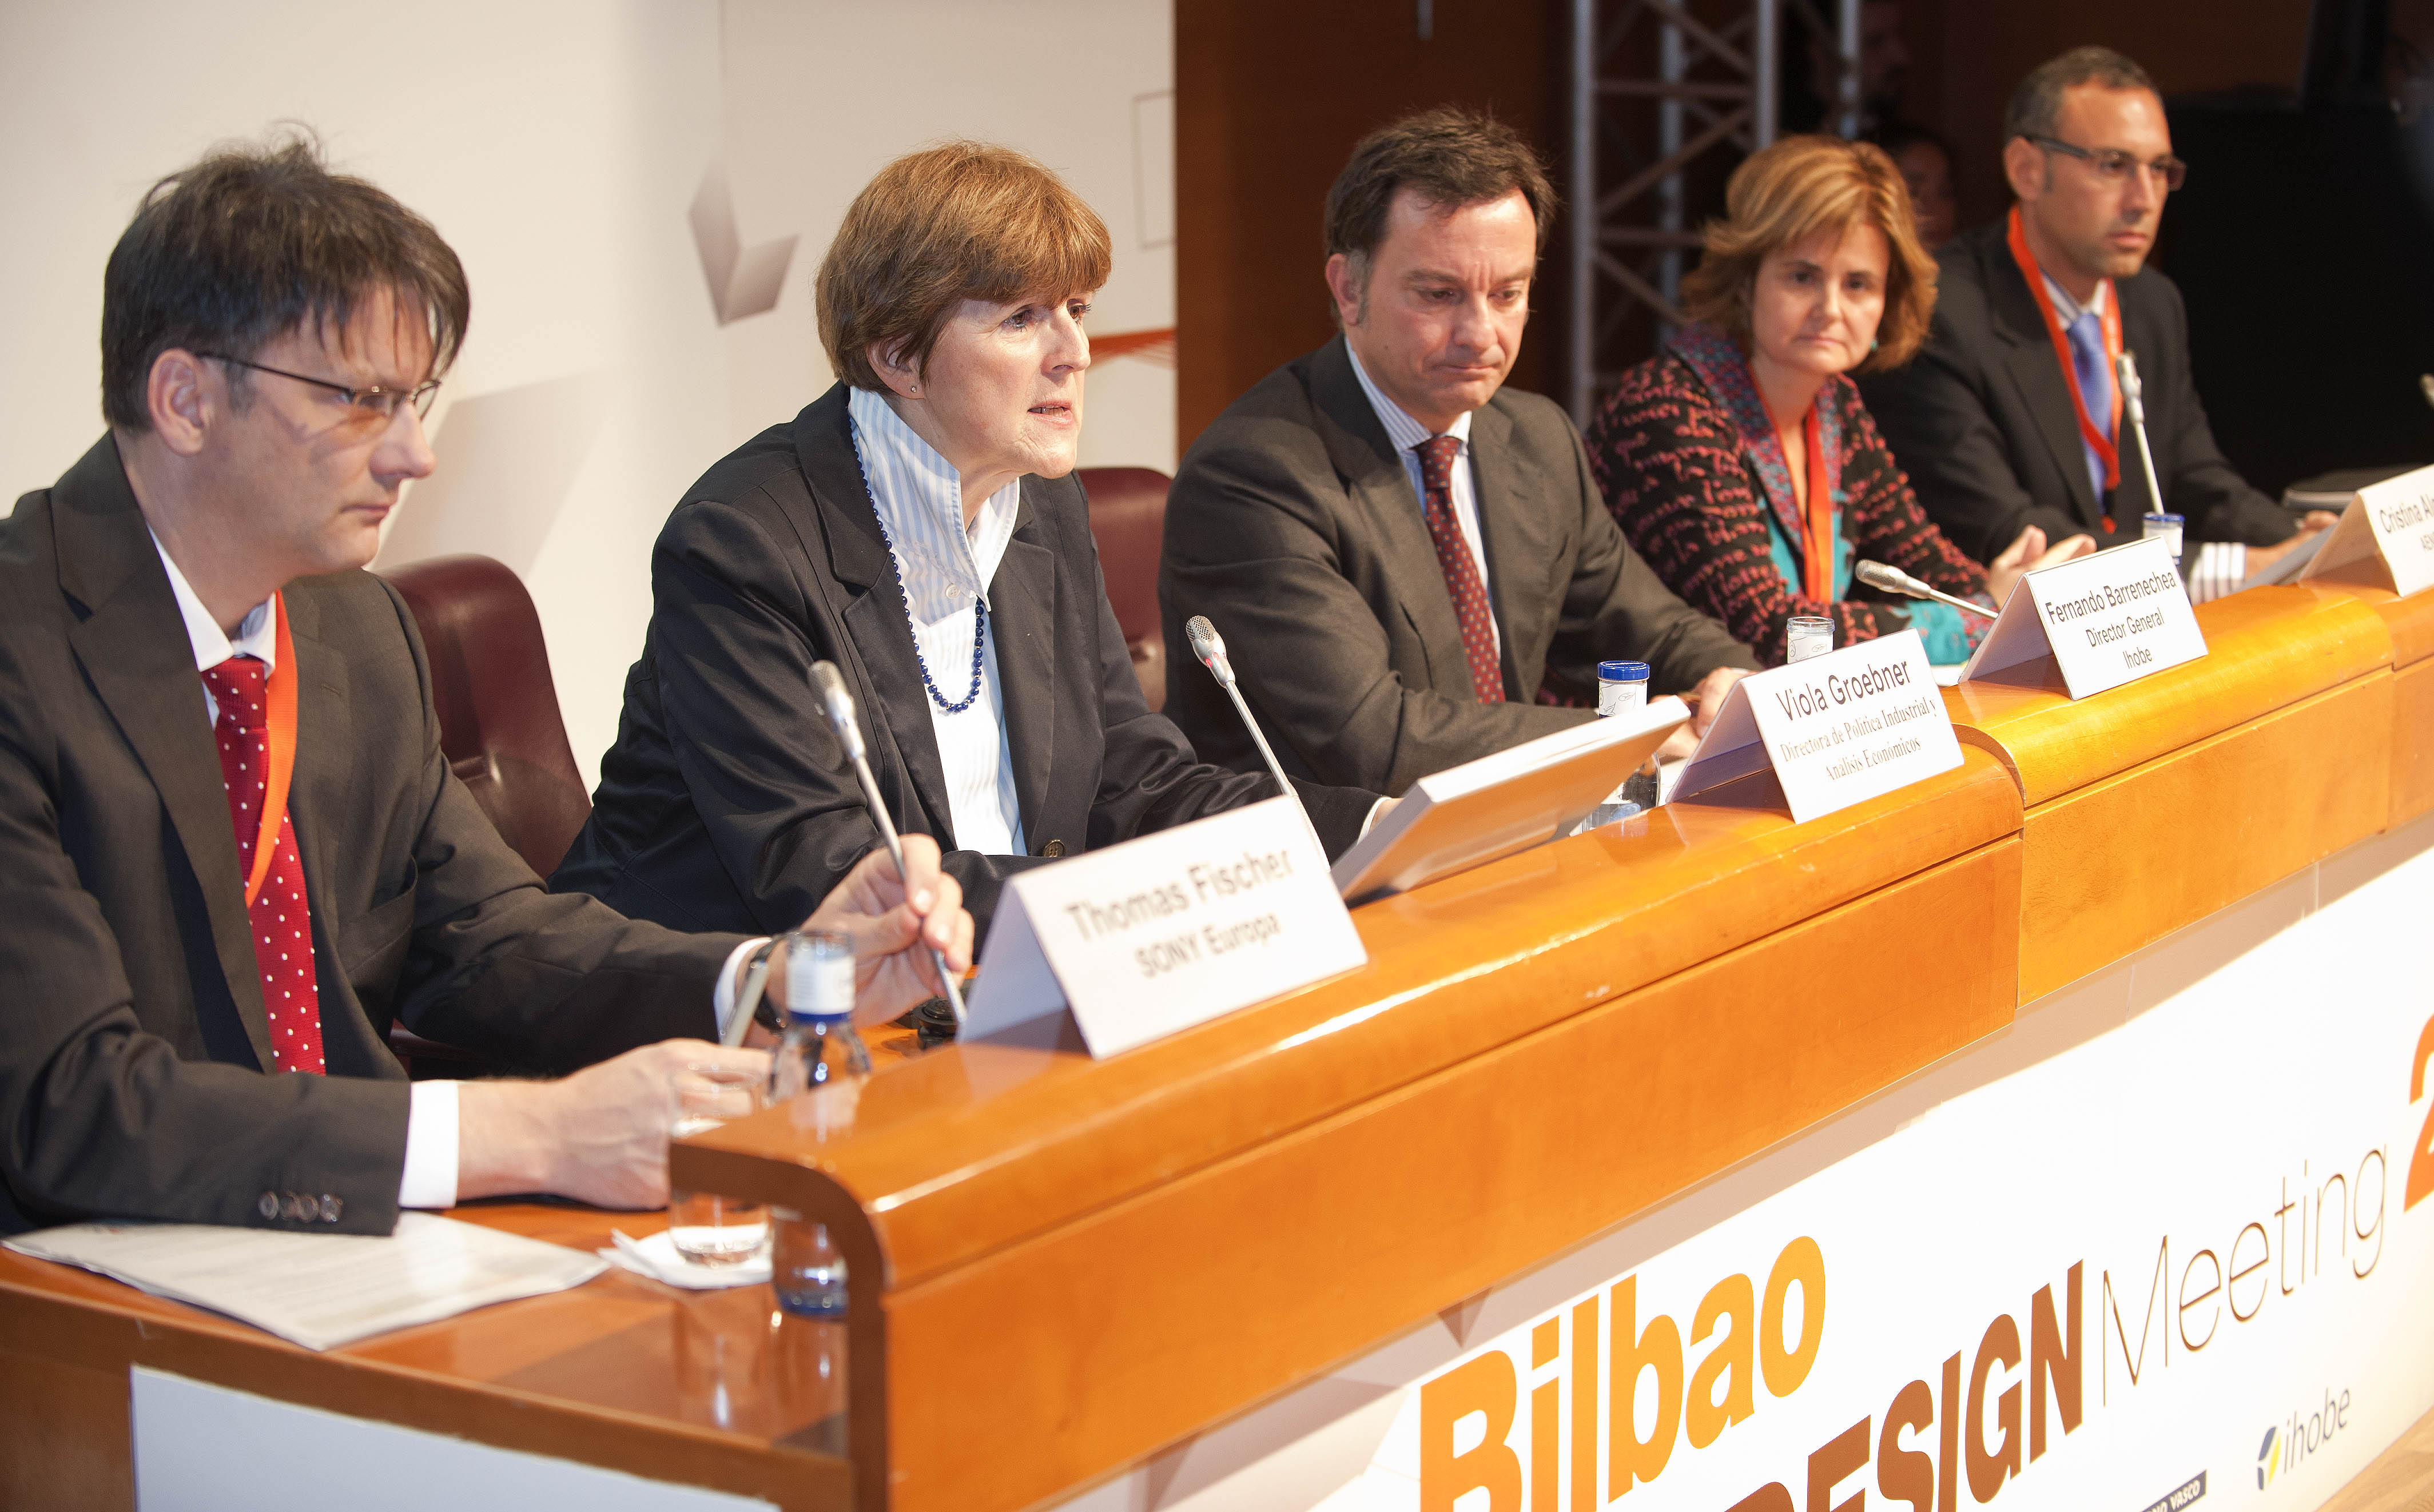 Basque companies and the Basque Government set up the Basque Ecodesign Center, an innovation hub